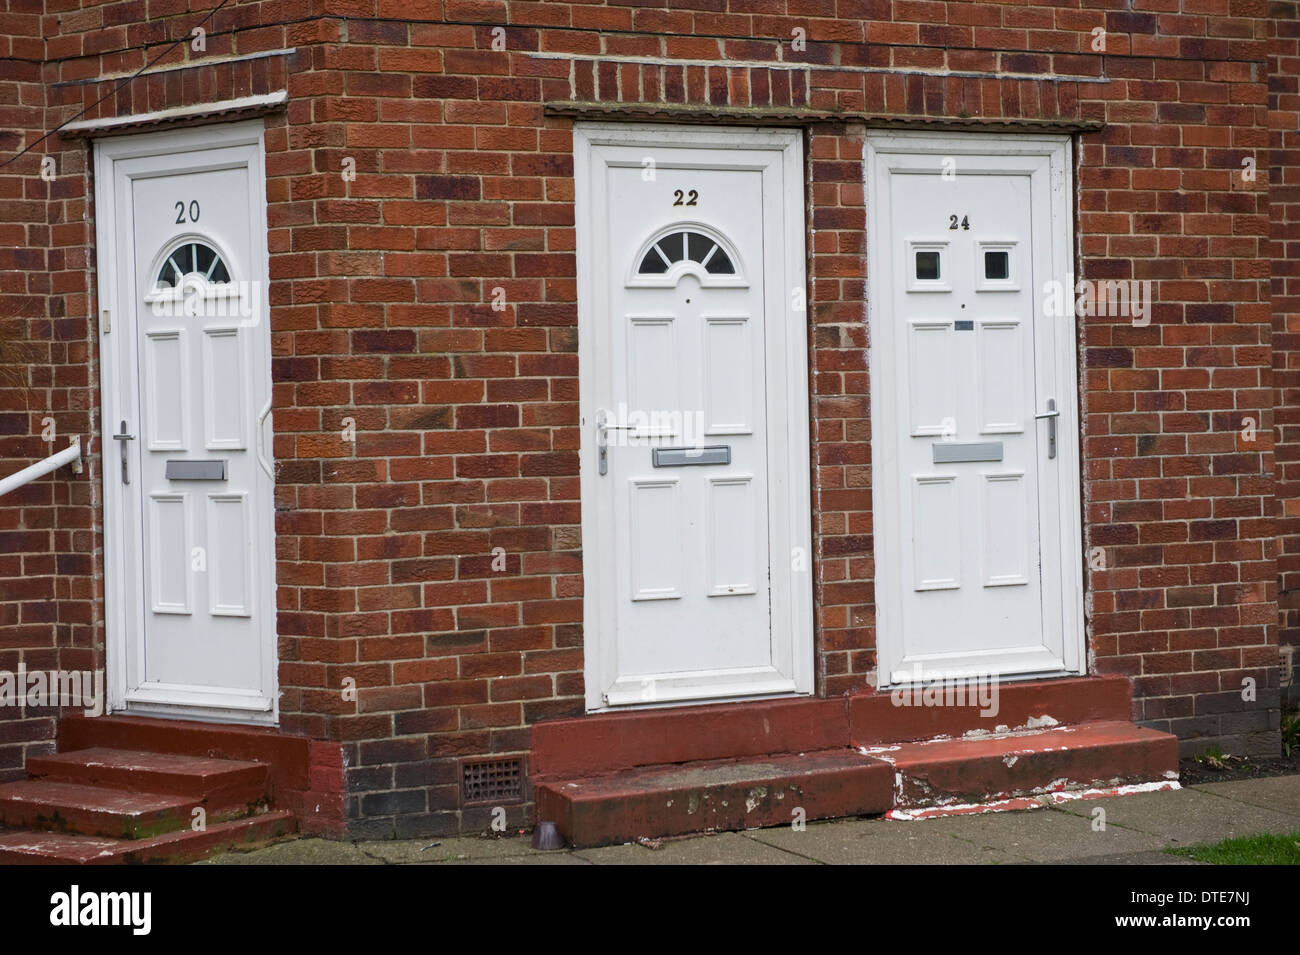 White number 20 22 u0026 24 plastic front doors of houses in Scarborough North Yorkshire England UK & White number 20 22 u0026 24 plastic front doors of houses in Scarborough ...